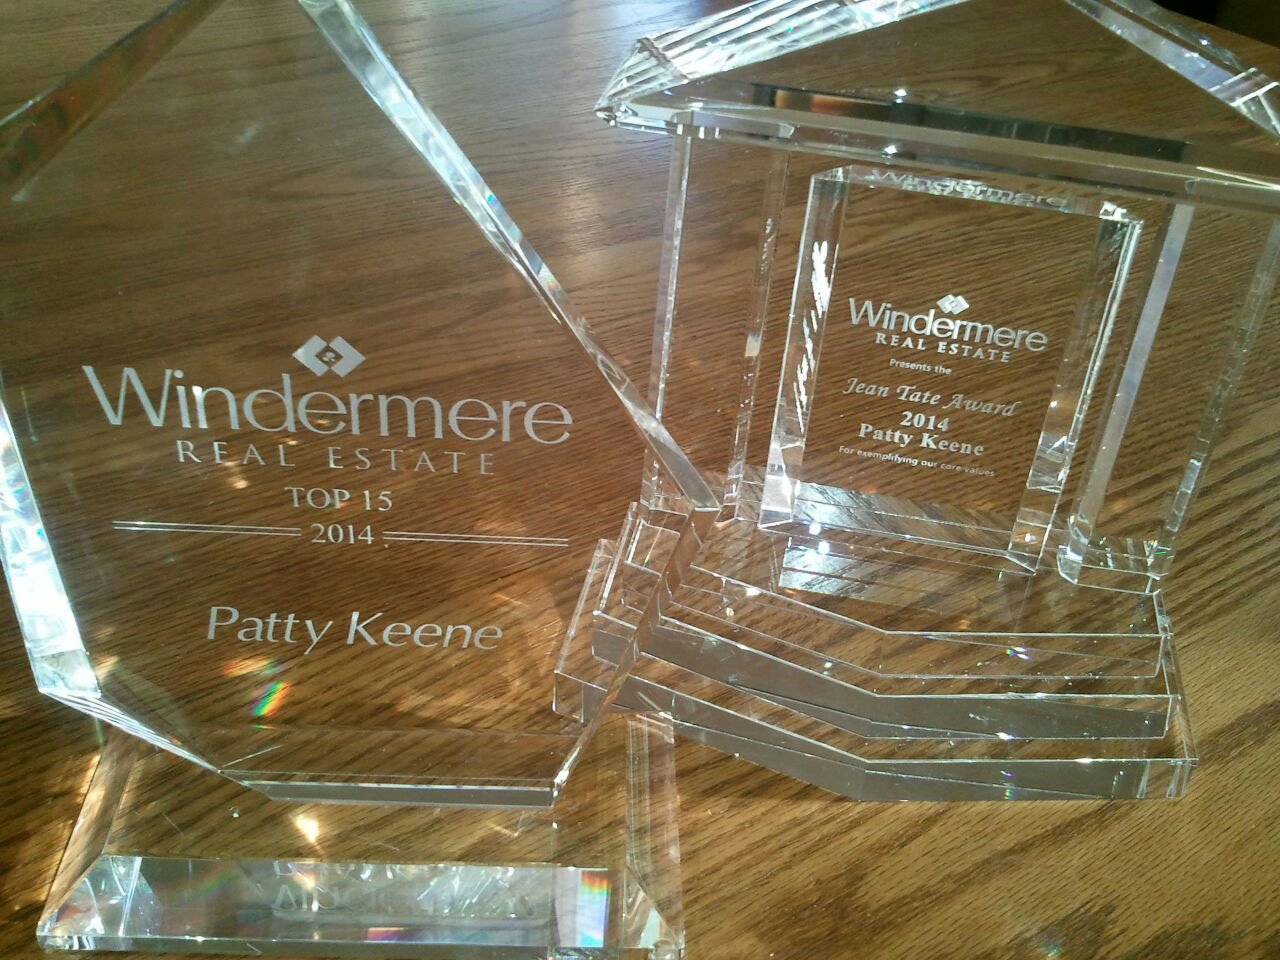 Patty Keene Awards, Real Estate Agent